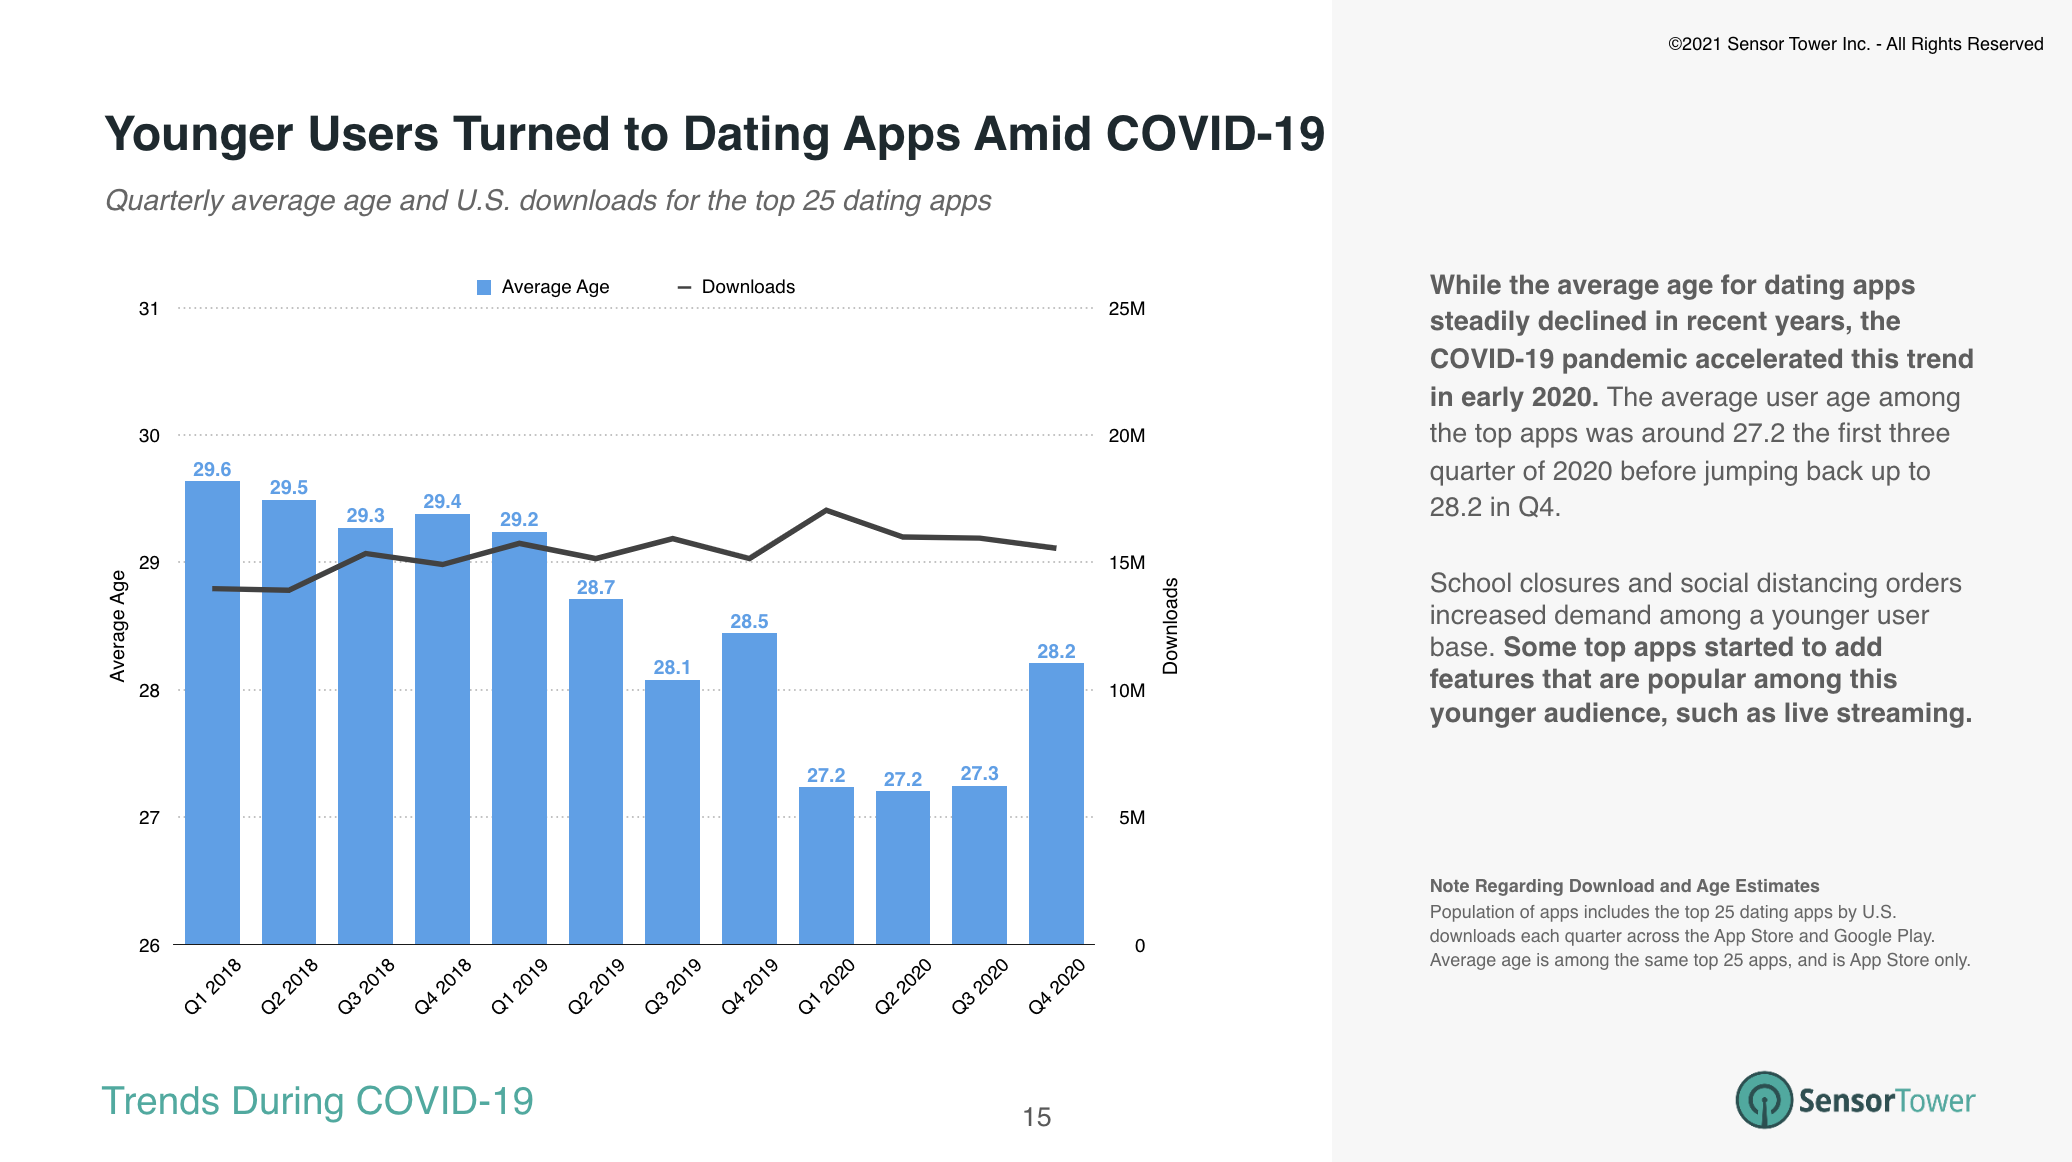 Top dating apps in the U.S. saw the average age of their users drop to its lowest during COVID-19